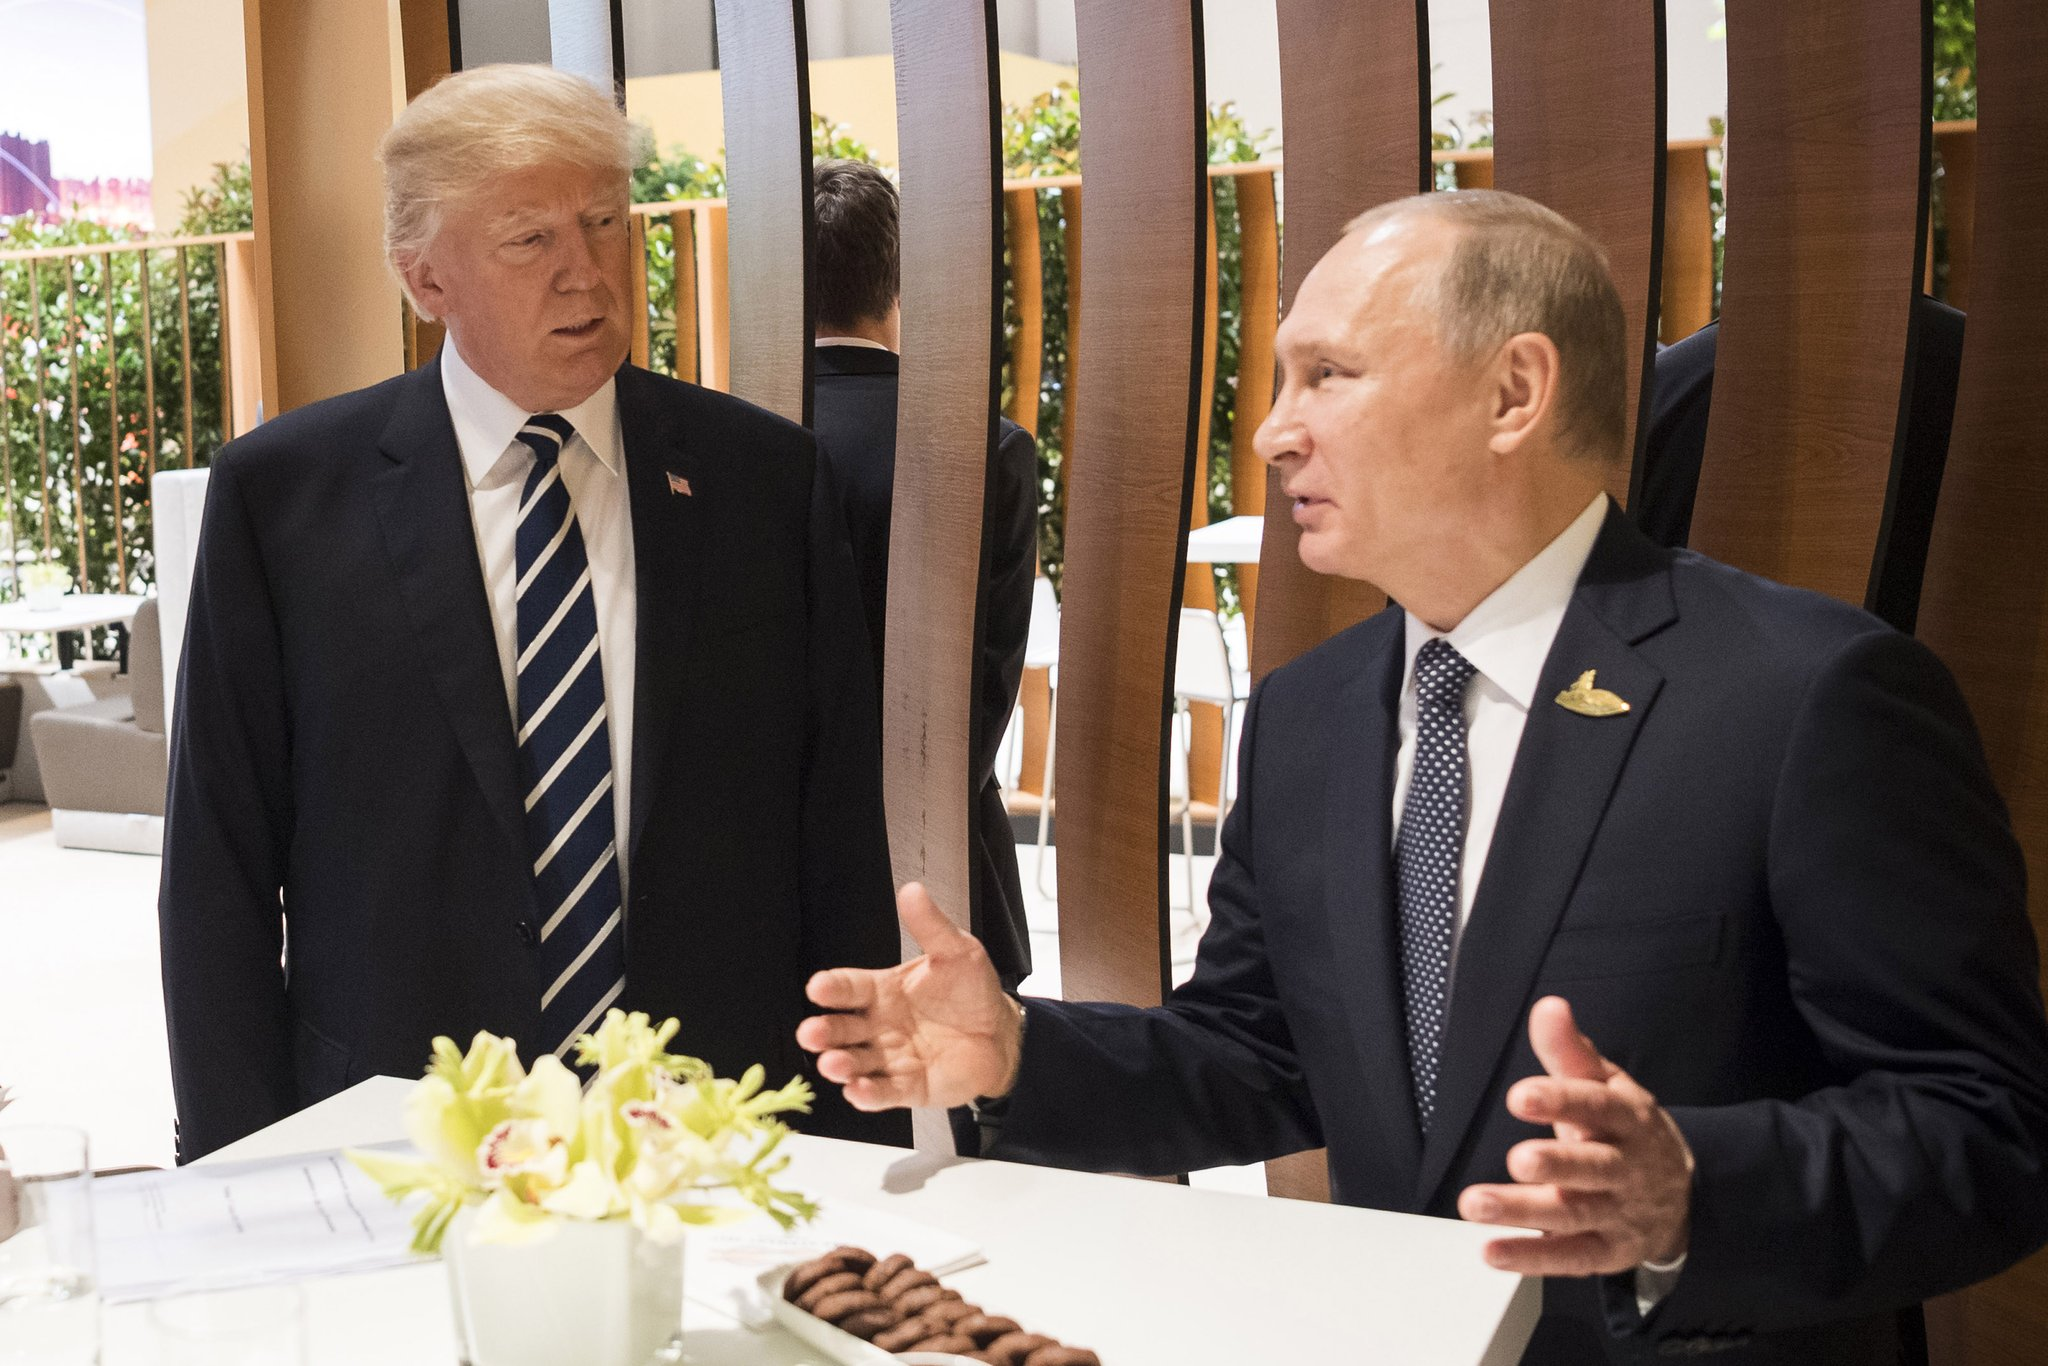 First meeting of Trump and Putin